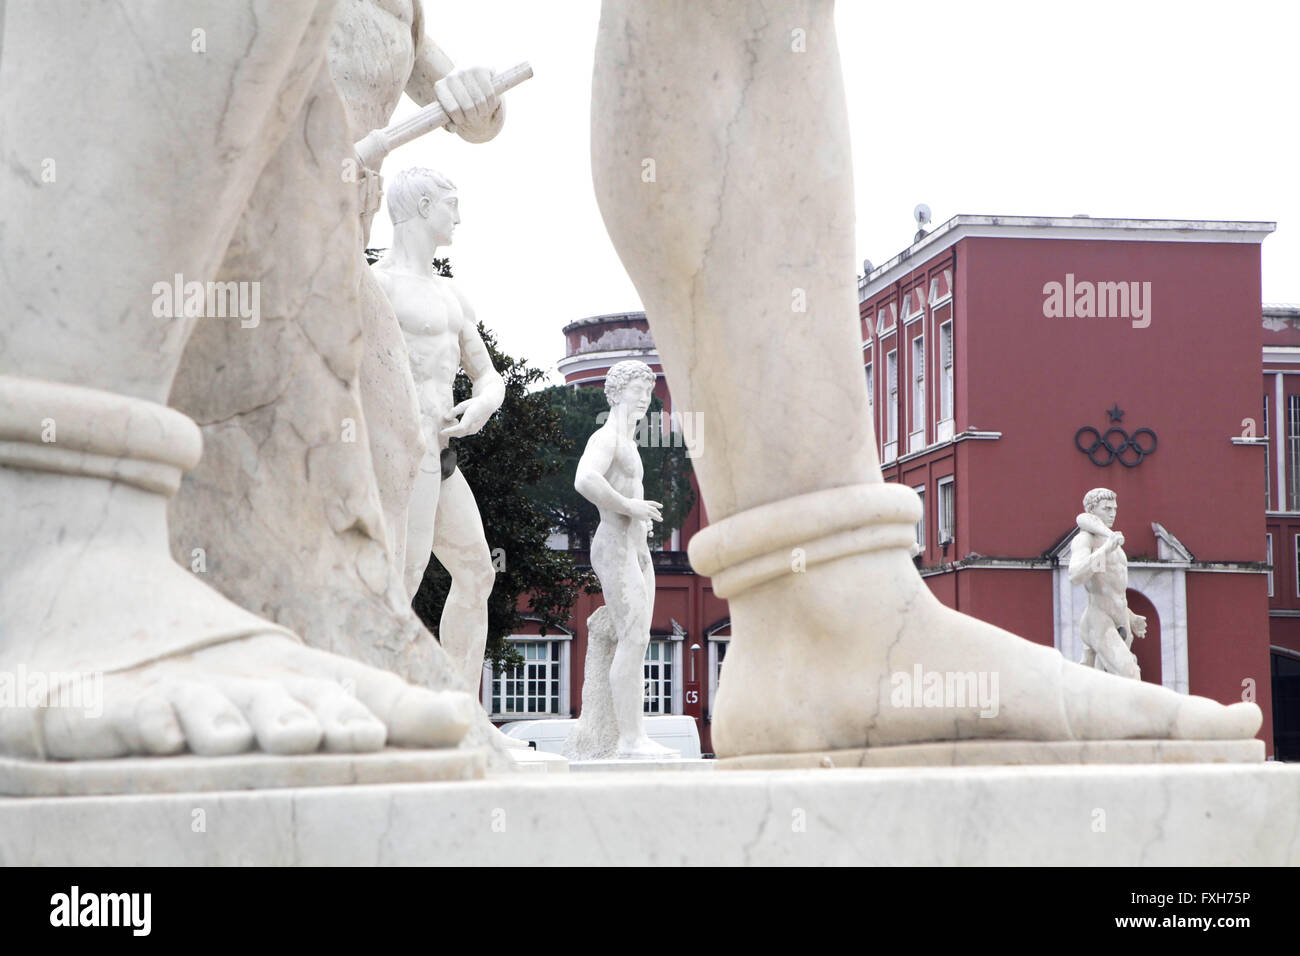 Italian Olympic Committee aka CONI. Statue of athlete in Stadio dei Marmi. Stadium of the Marbles a sport complex - Stock Image